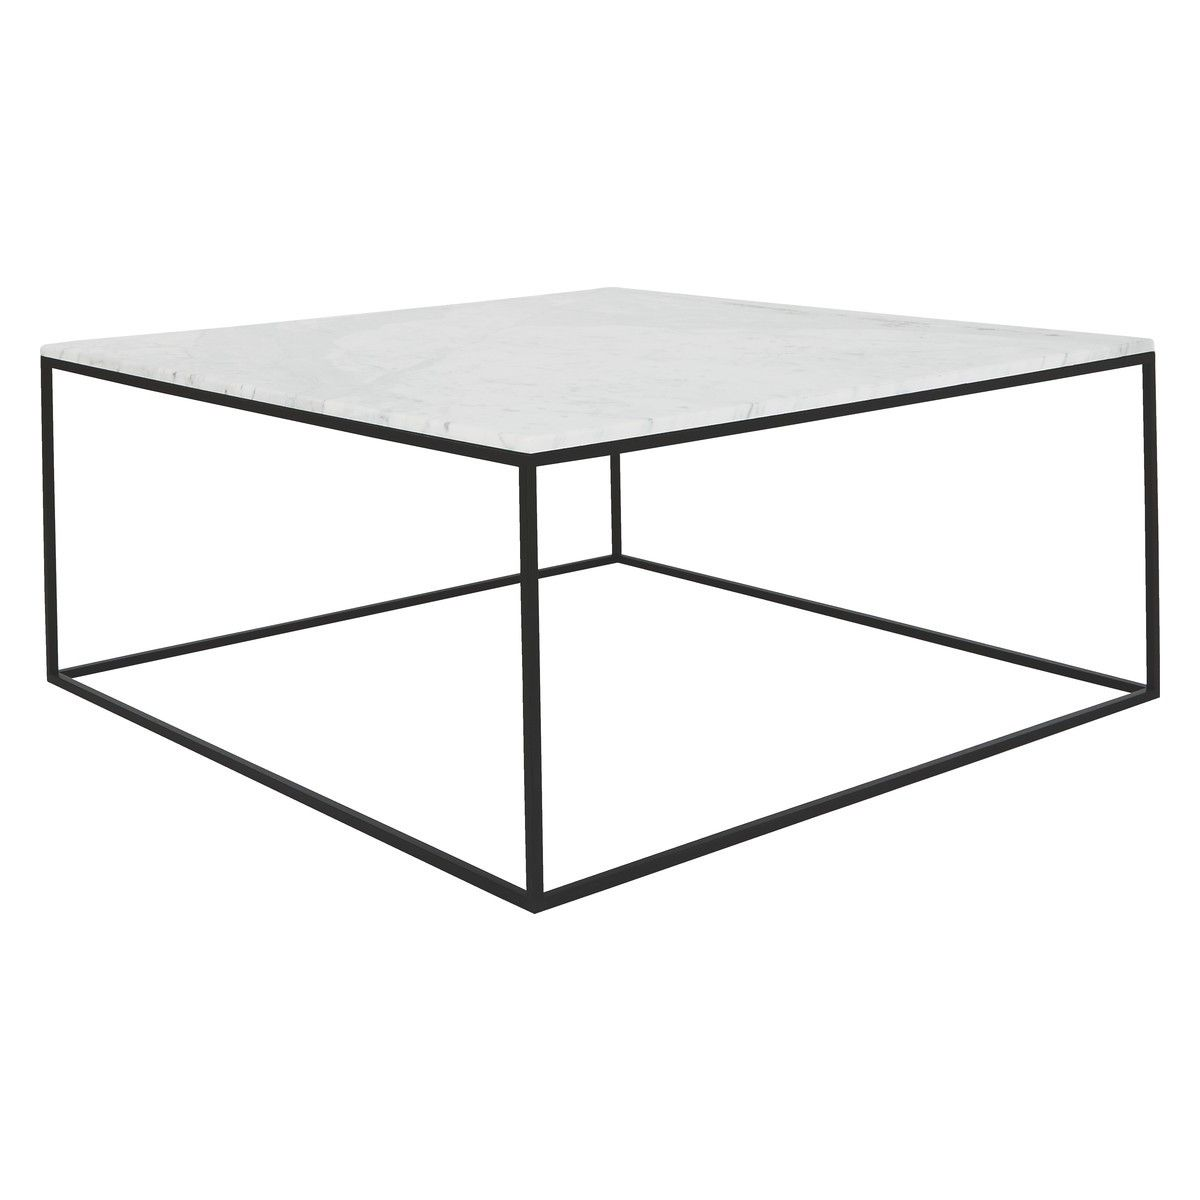 Habitat Beistelltisch Nestor Small Square Marble Coffee Table Buy Now At Habitat Uk